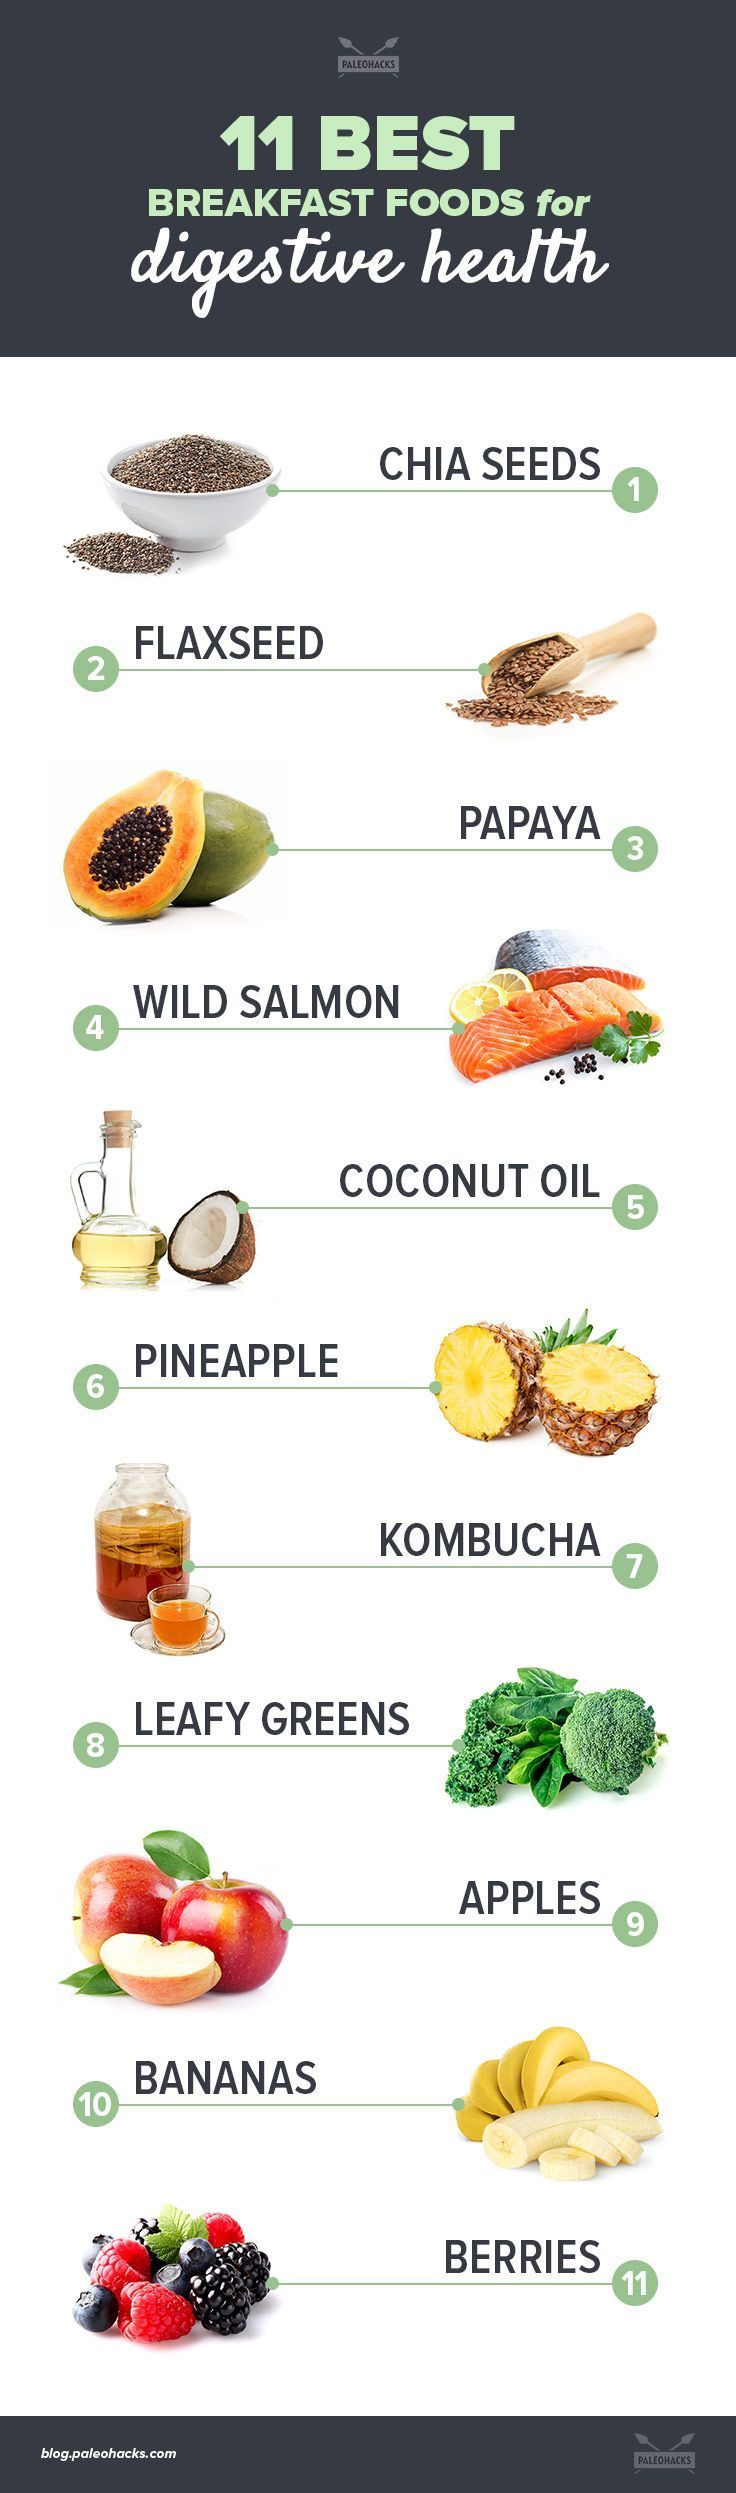 breakfast foods for digestive health infographic